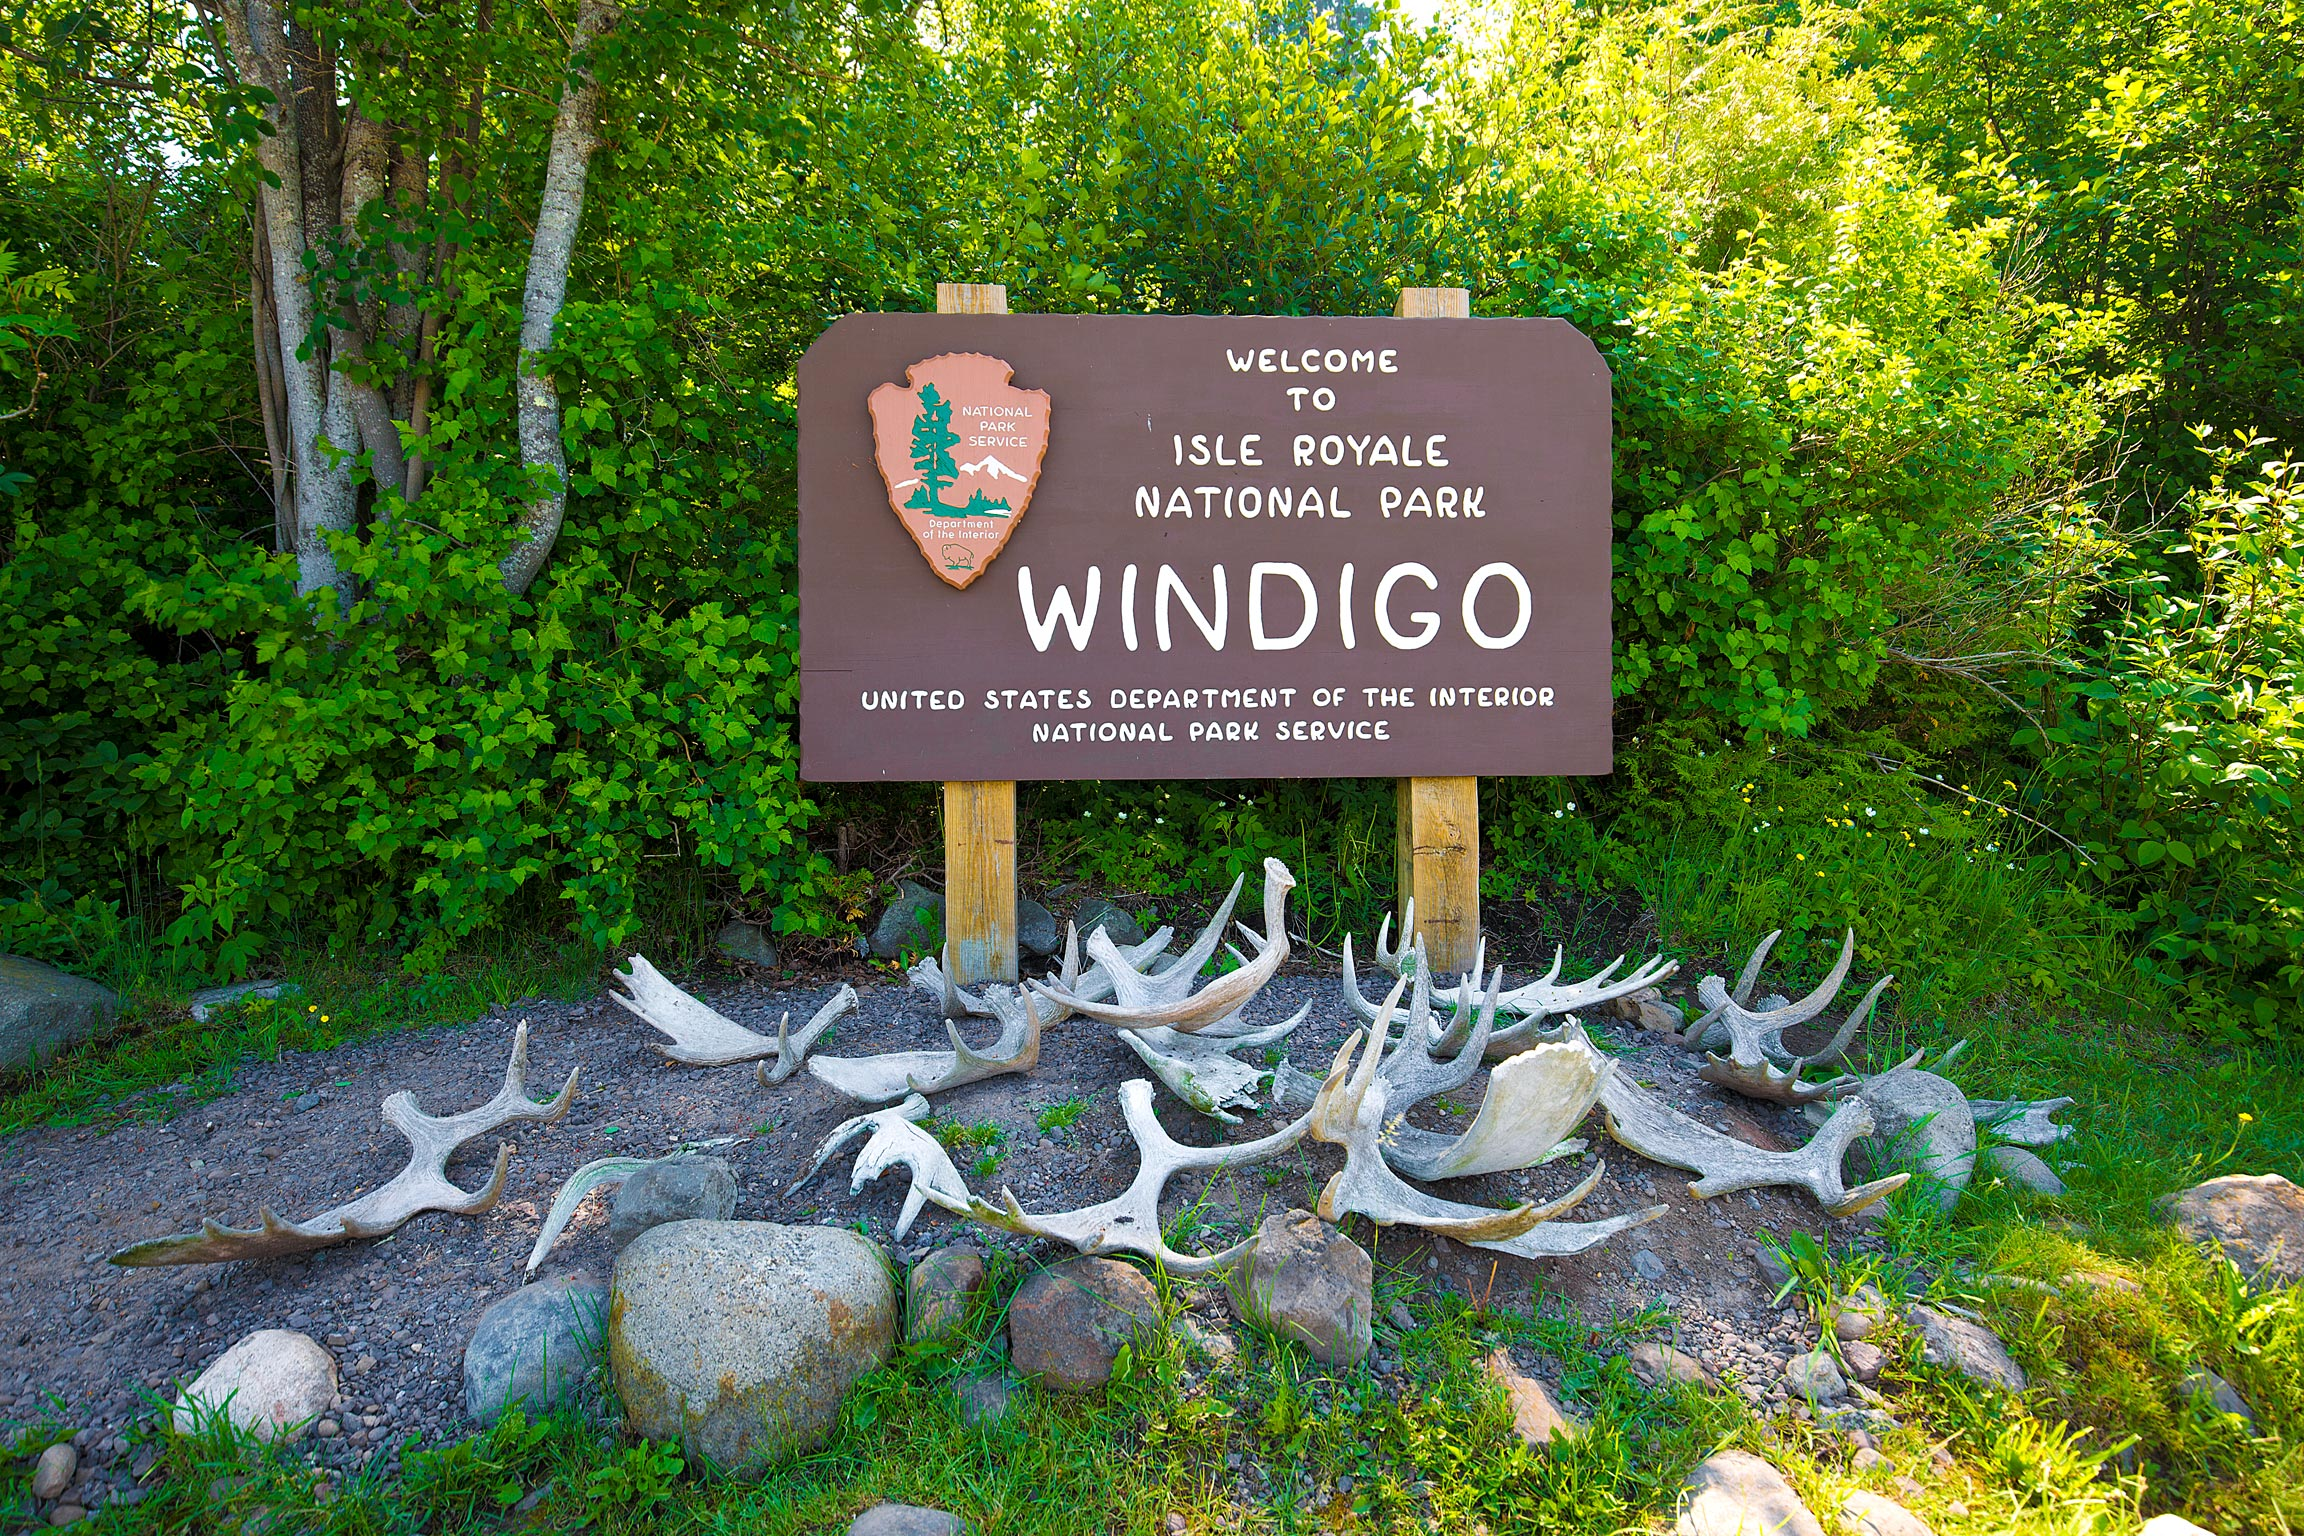 Sign for Windigo in Isle Royale National Park